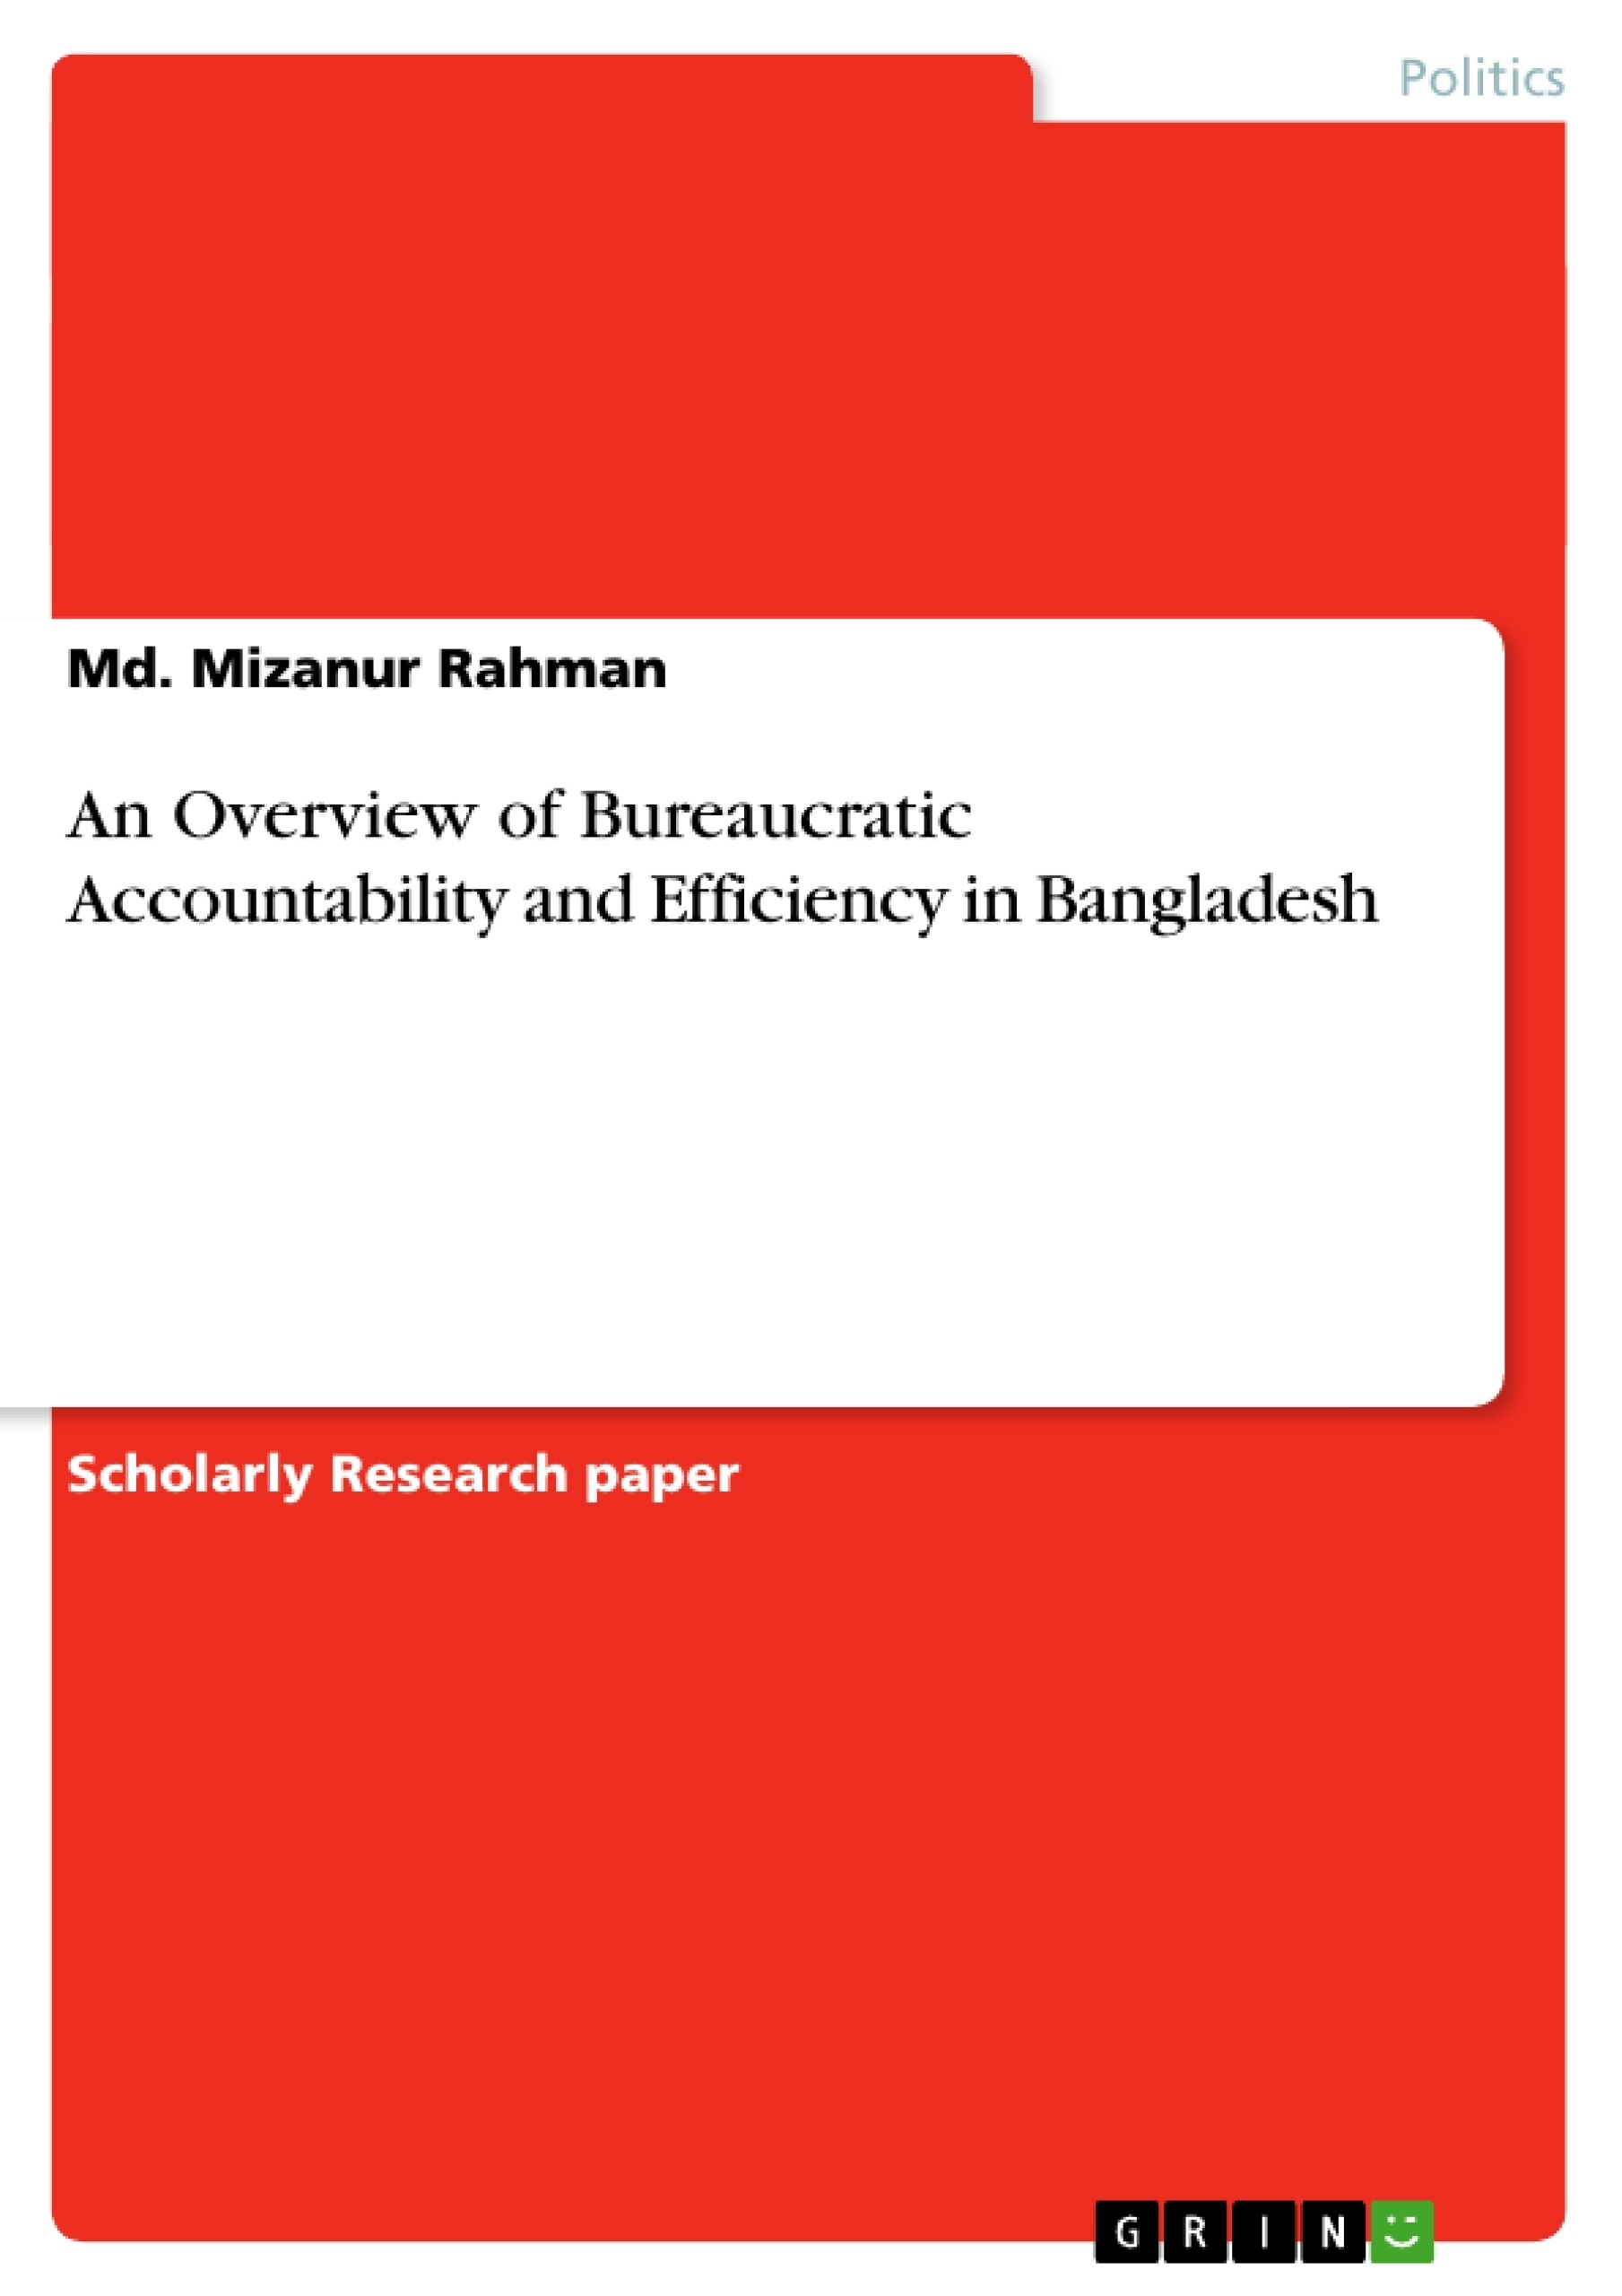 Title: An Overview of Bureaucratic Accountability and Efficiency in Bangladesh